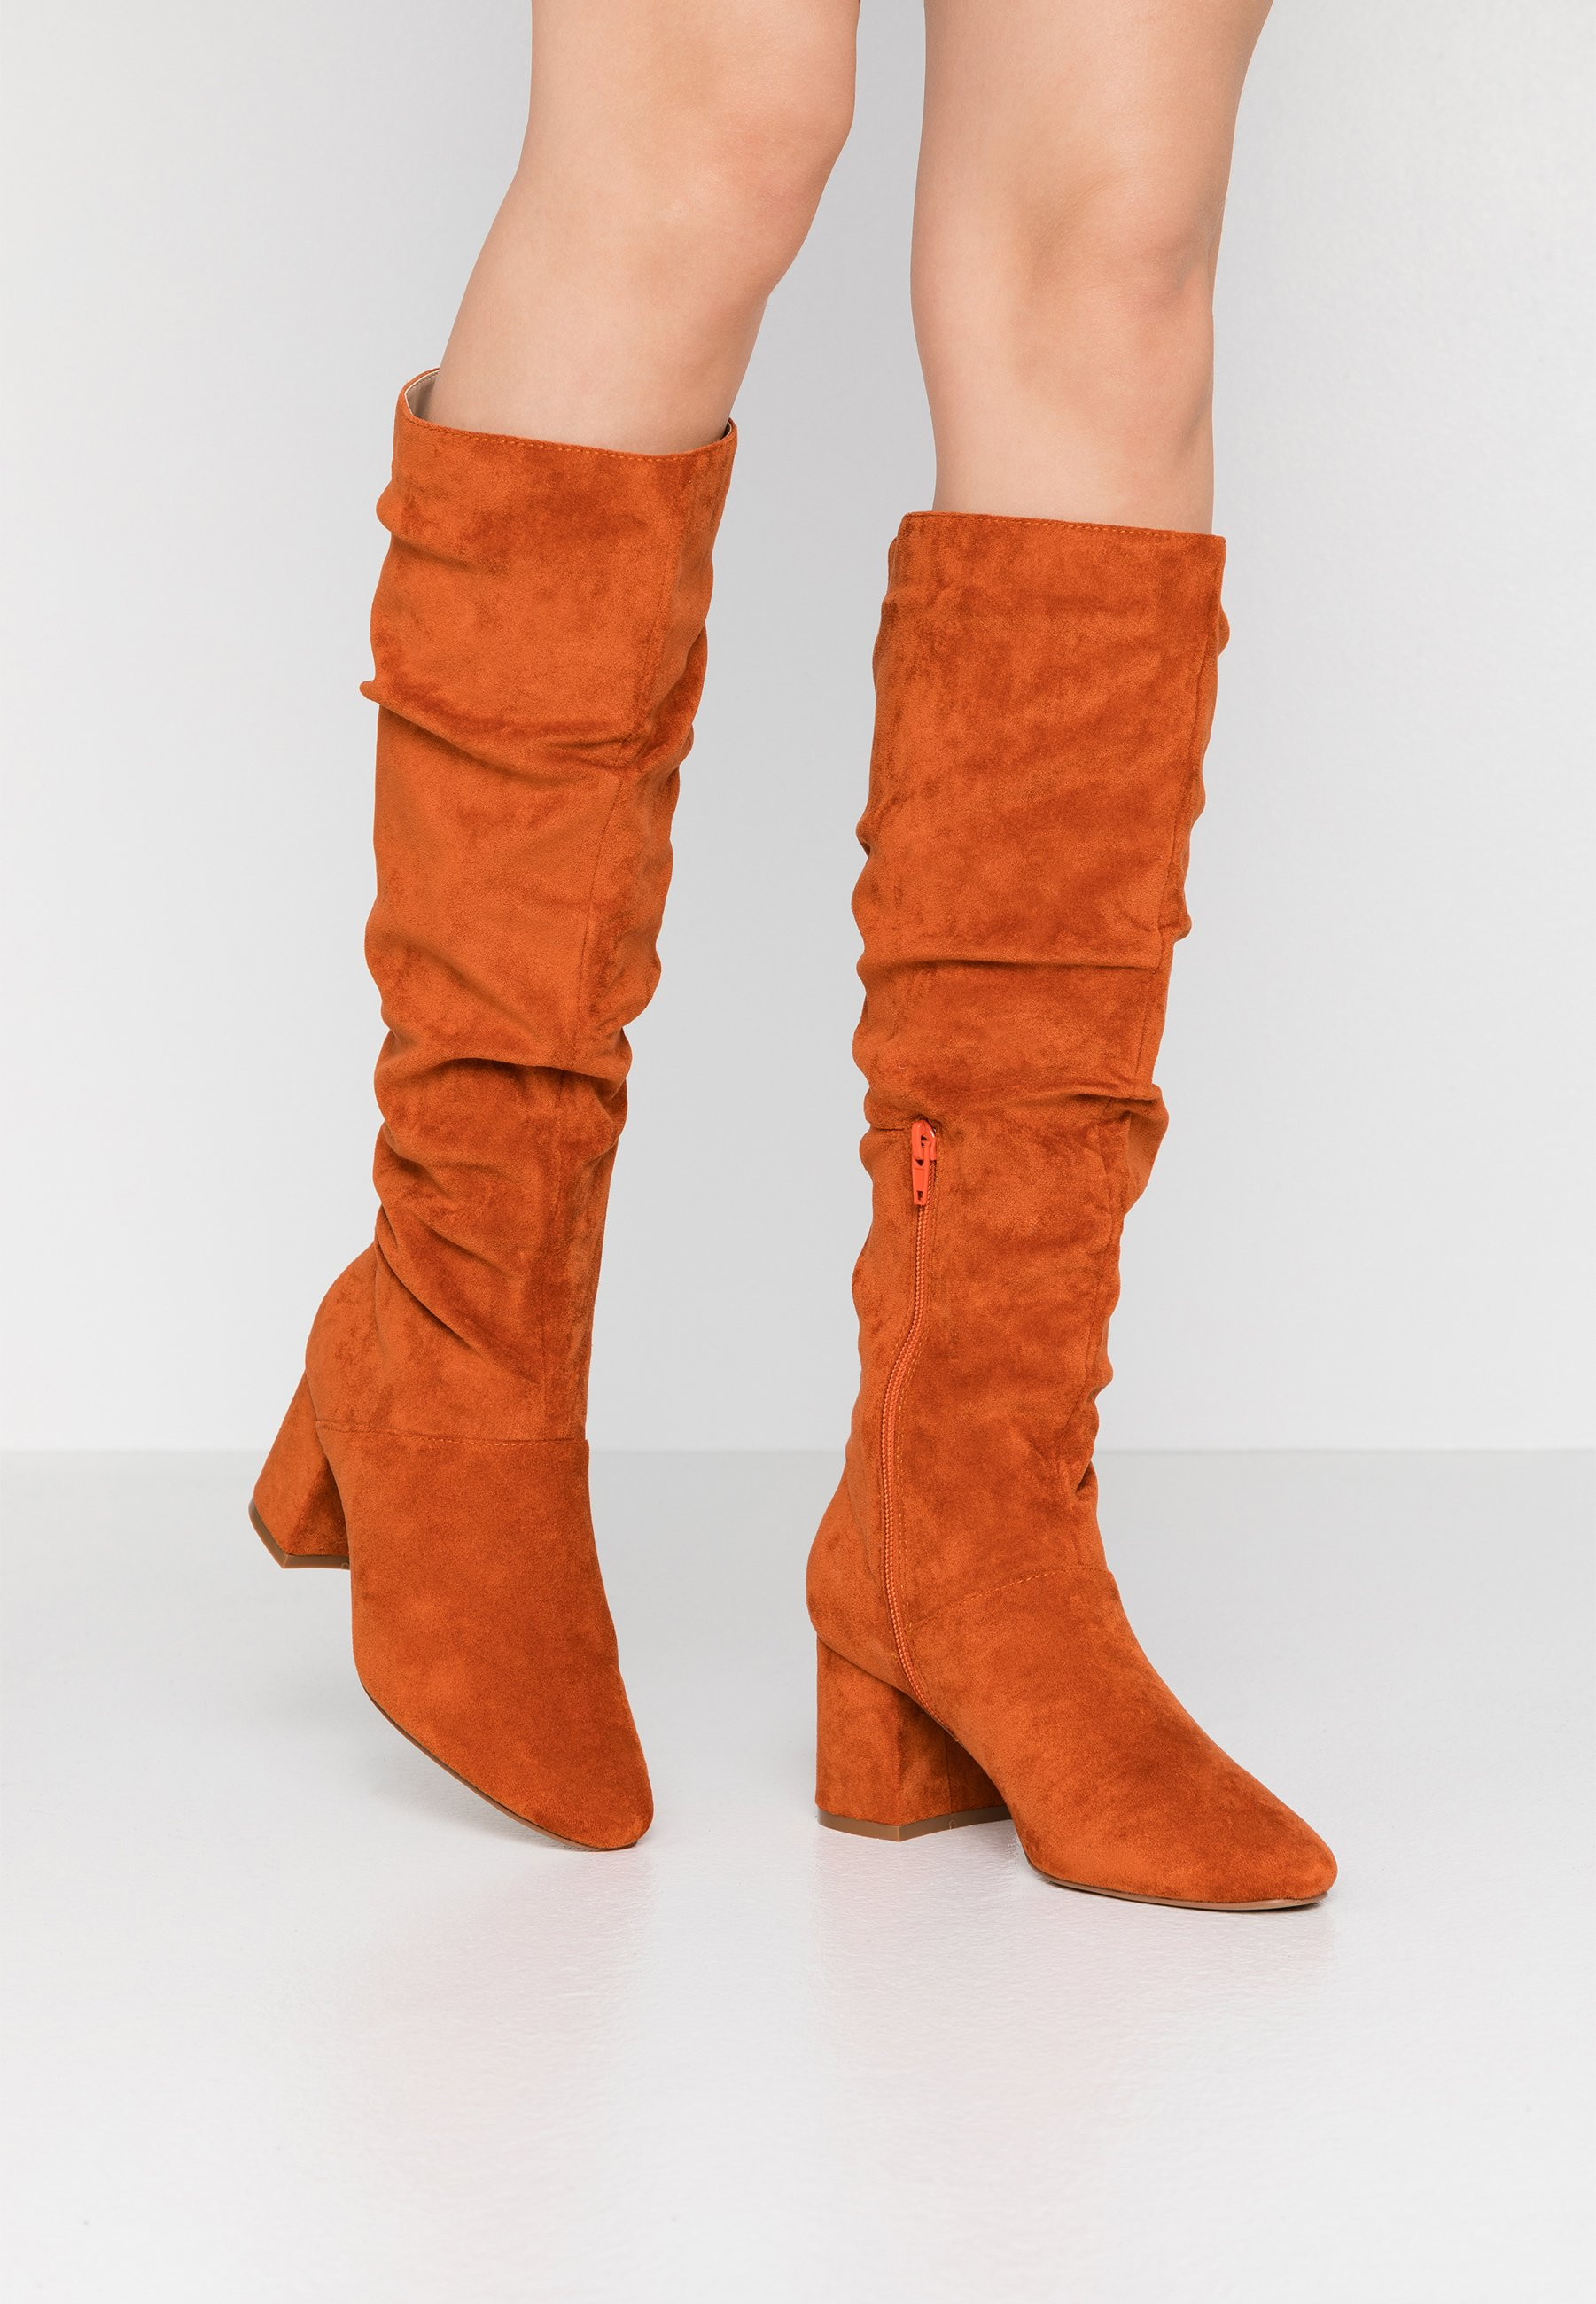 Lost Ink SLOUCHY KNEE HIGH BOOT - Bottes - rust - Bottes femme Nouveau